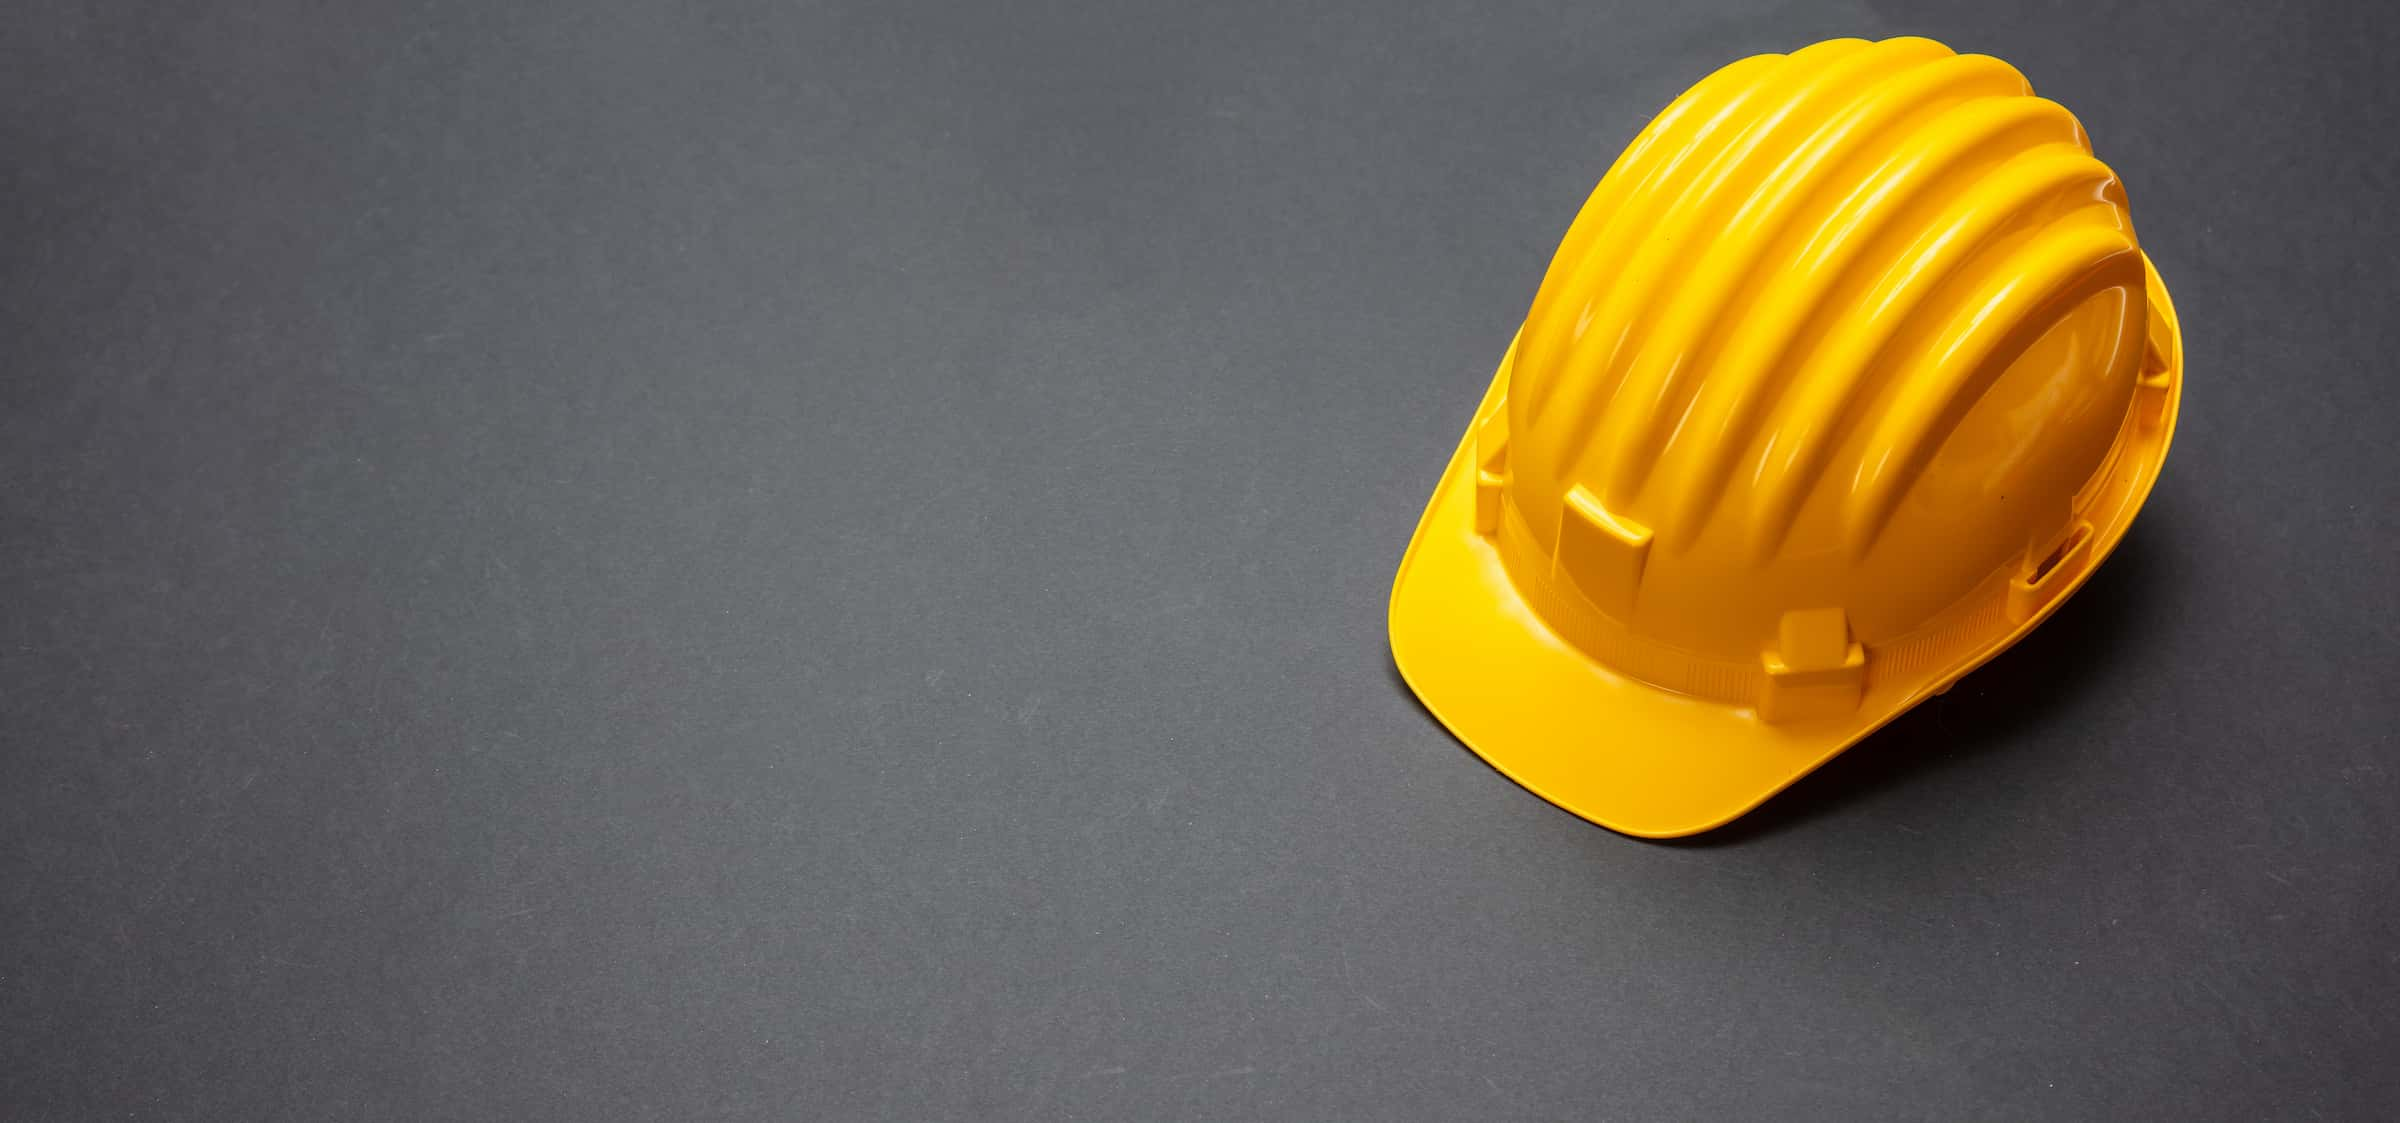 construction-project-safety-yellow-hard-hat-on-bla-NG9BPZS (1)